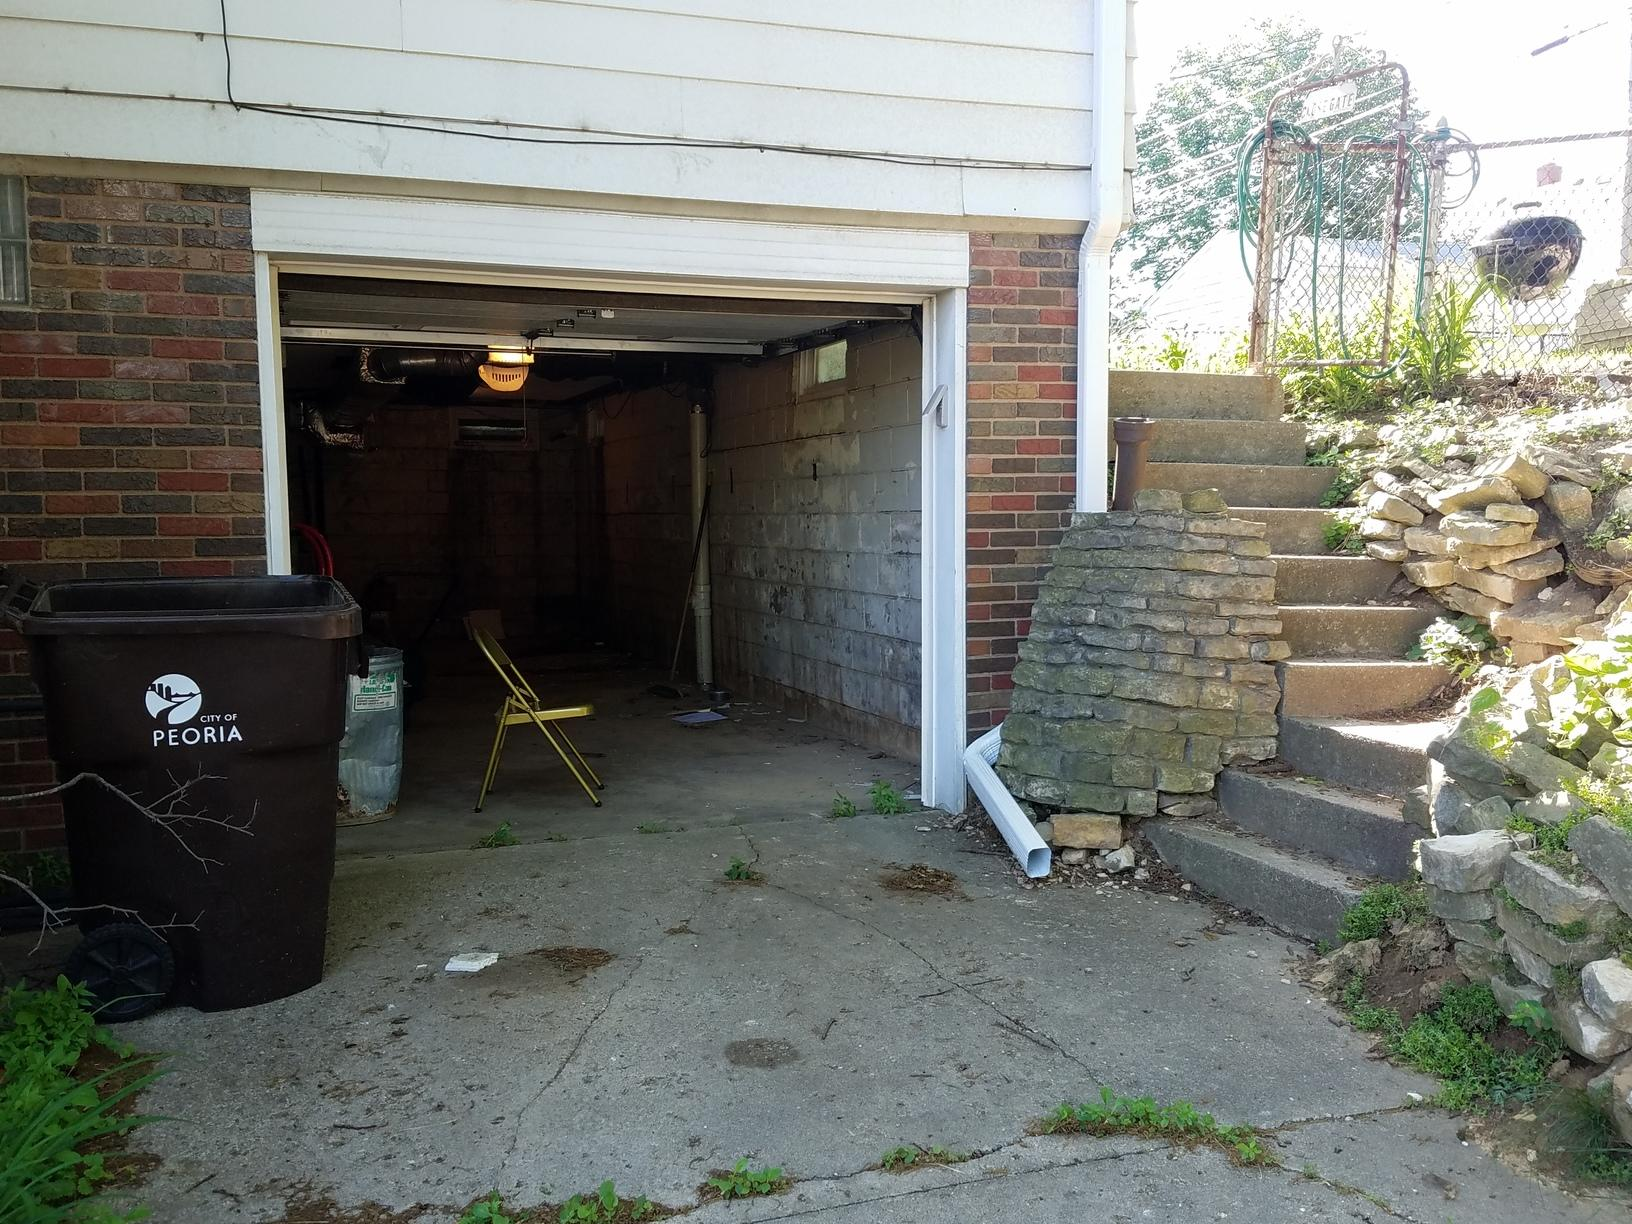 The garage wall was bowing and cracking.